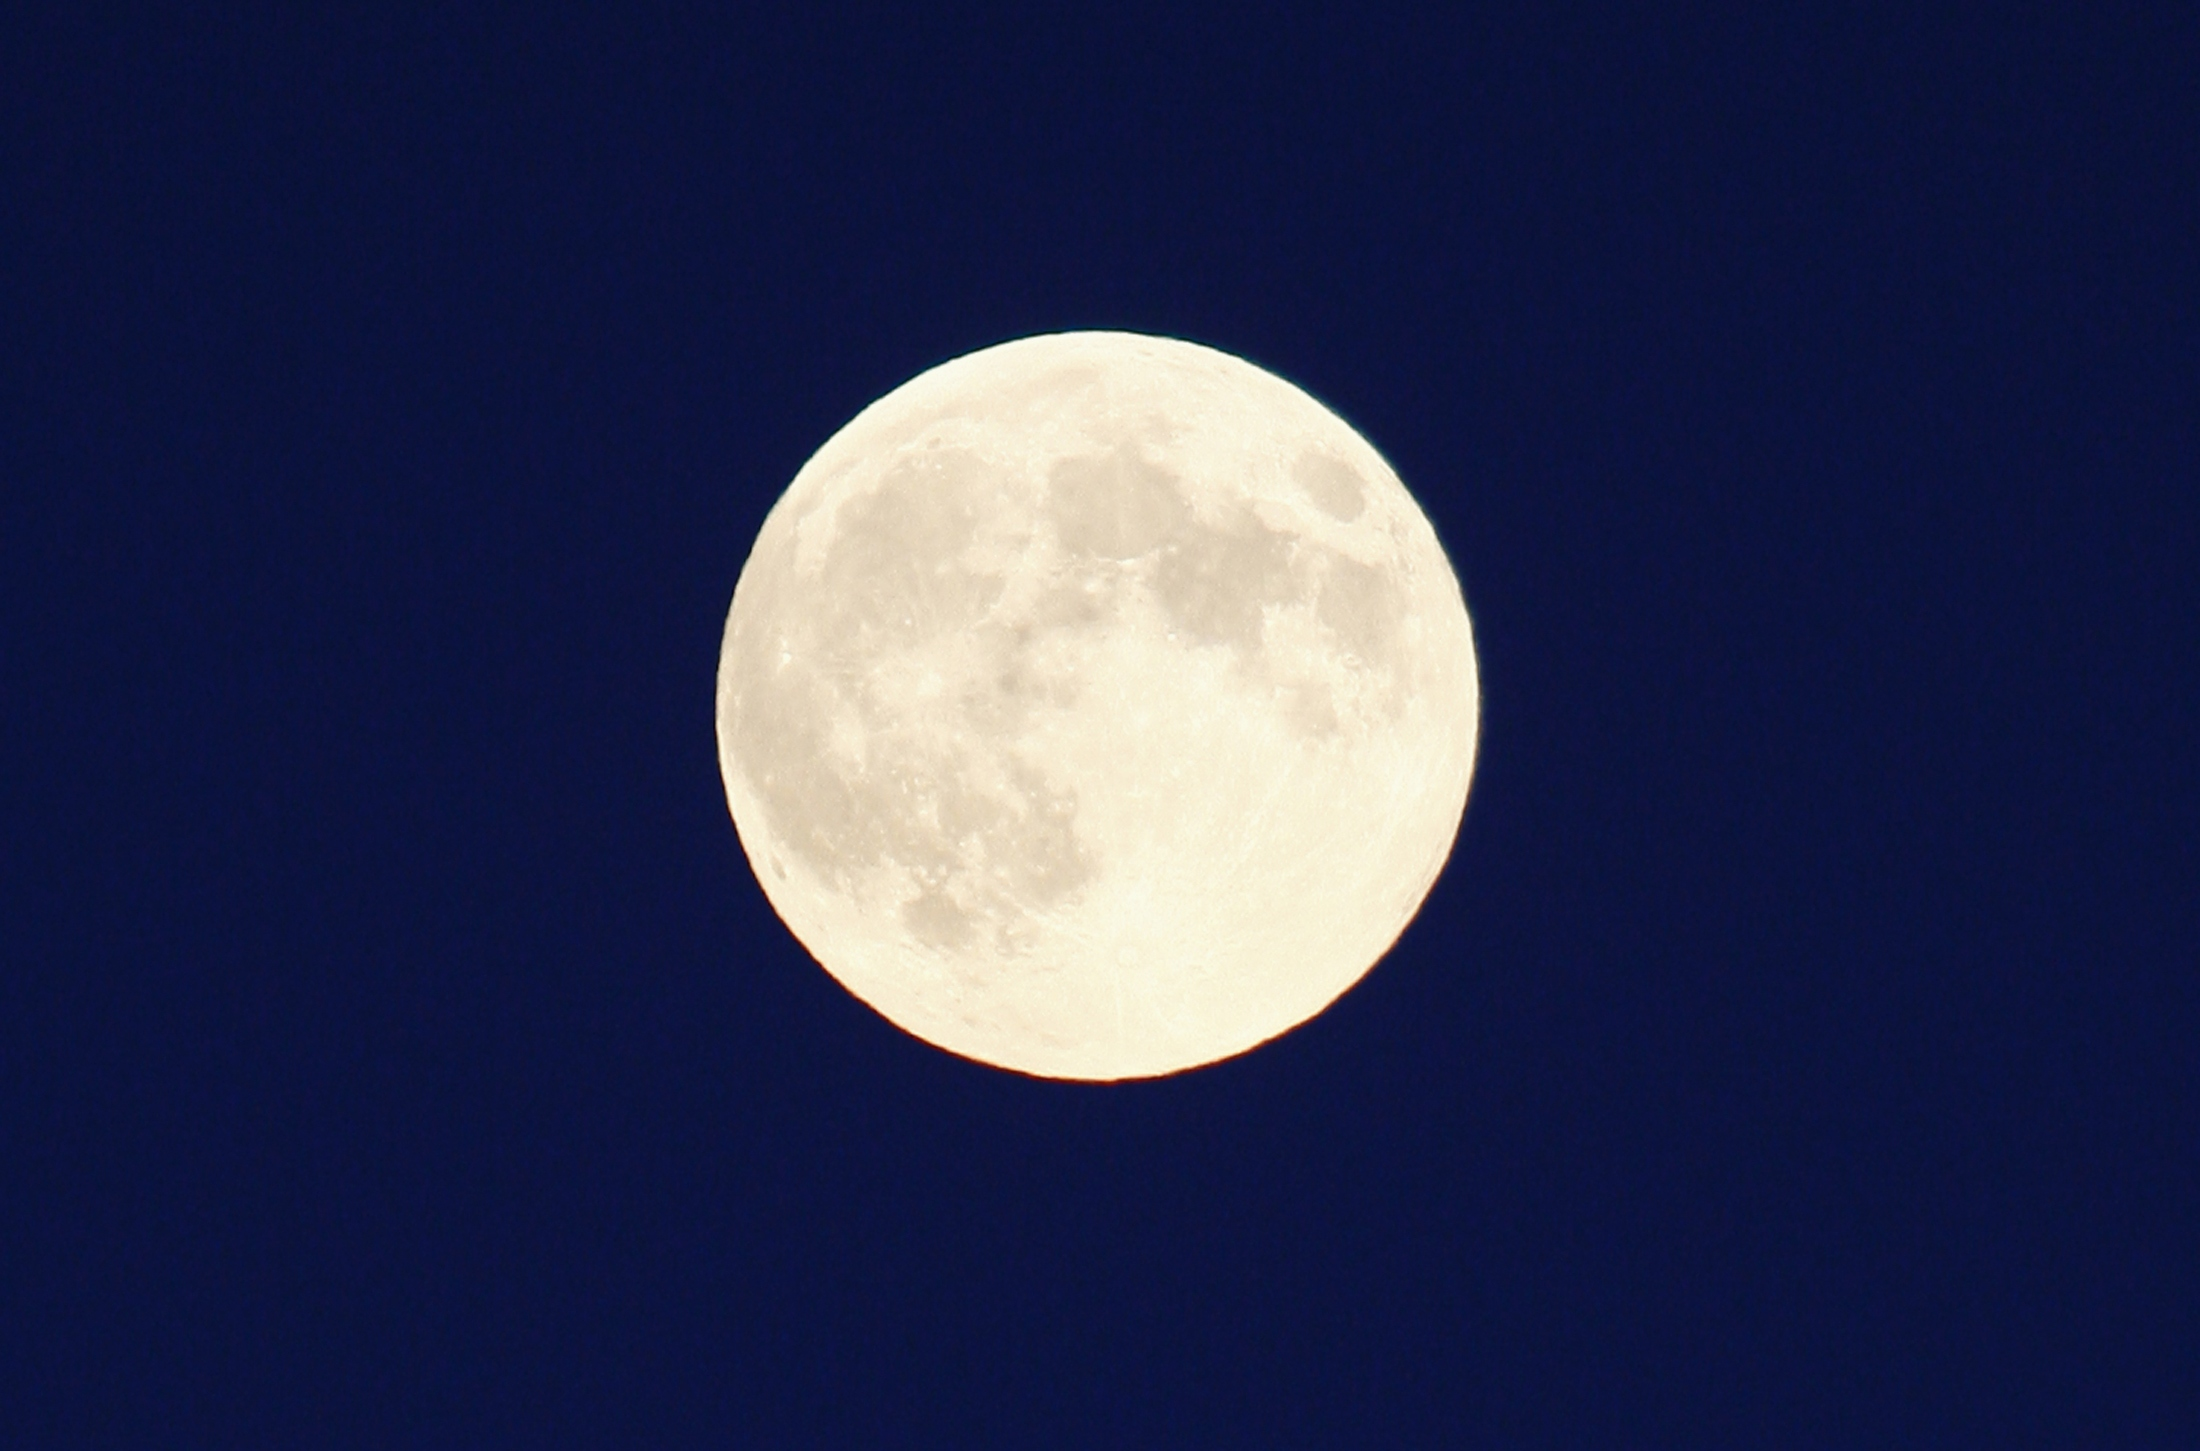 A full moon, also a harvest moon, rises over Halton Hills, Ontario outside Toronto